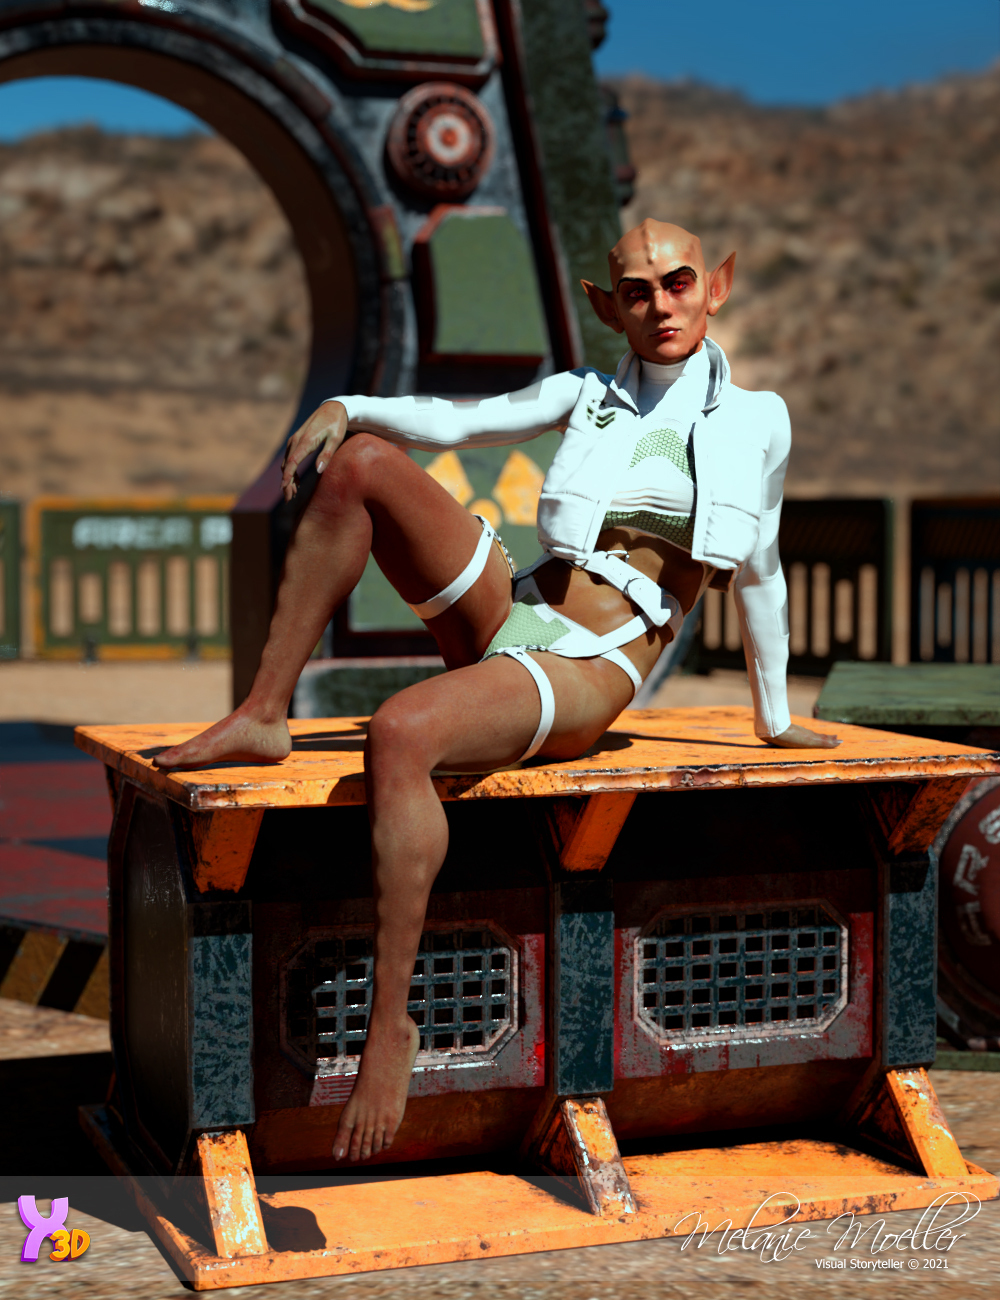 Licia for Fefecoolyellow by Nyala